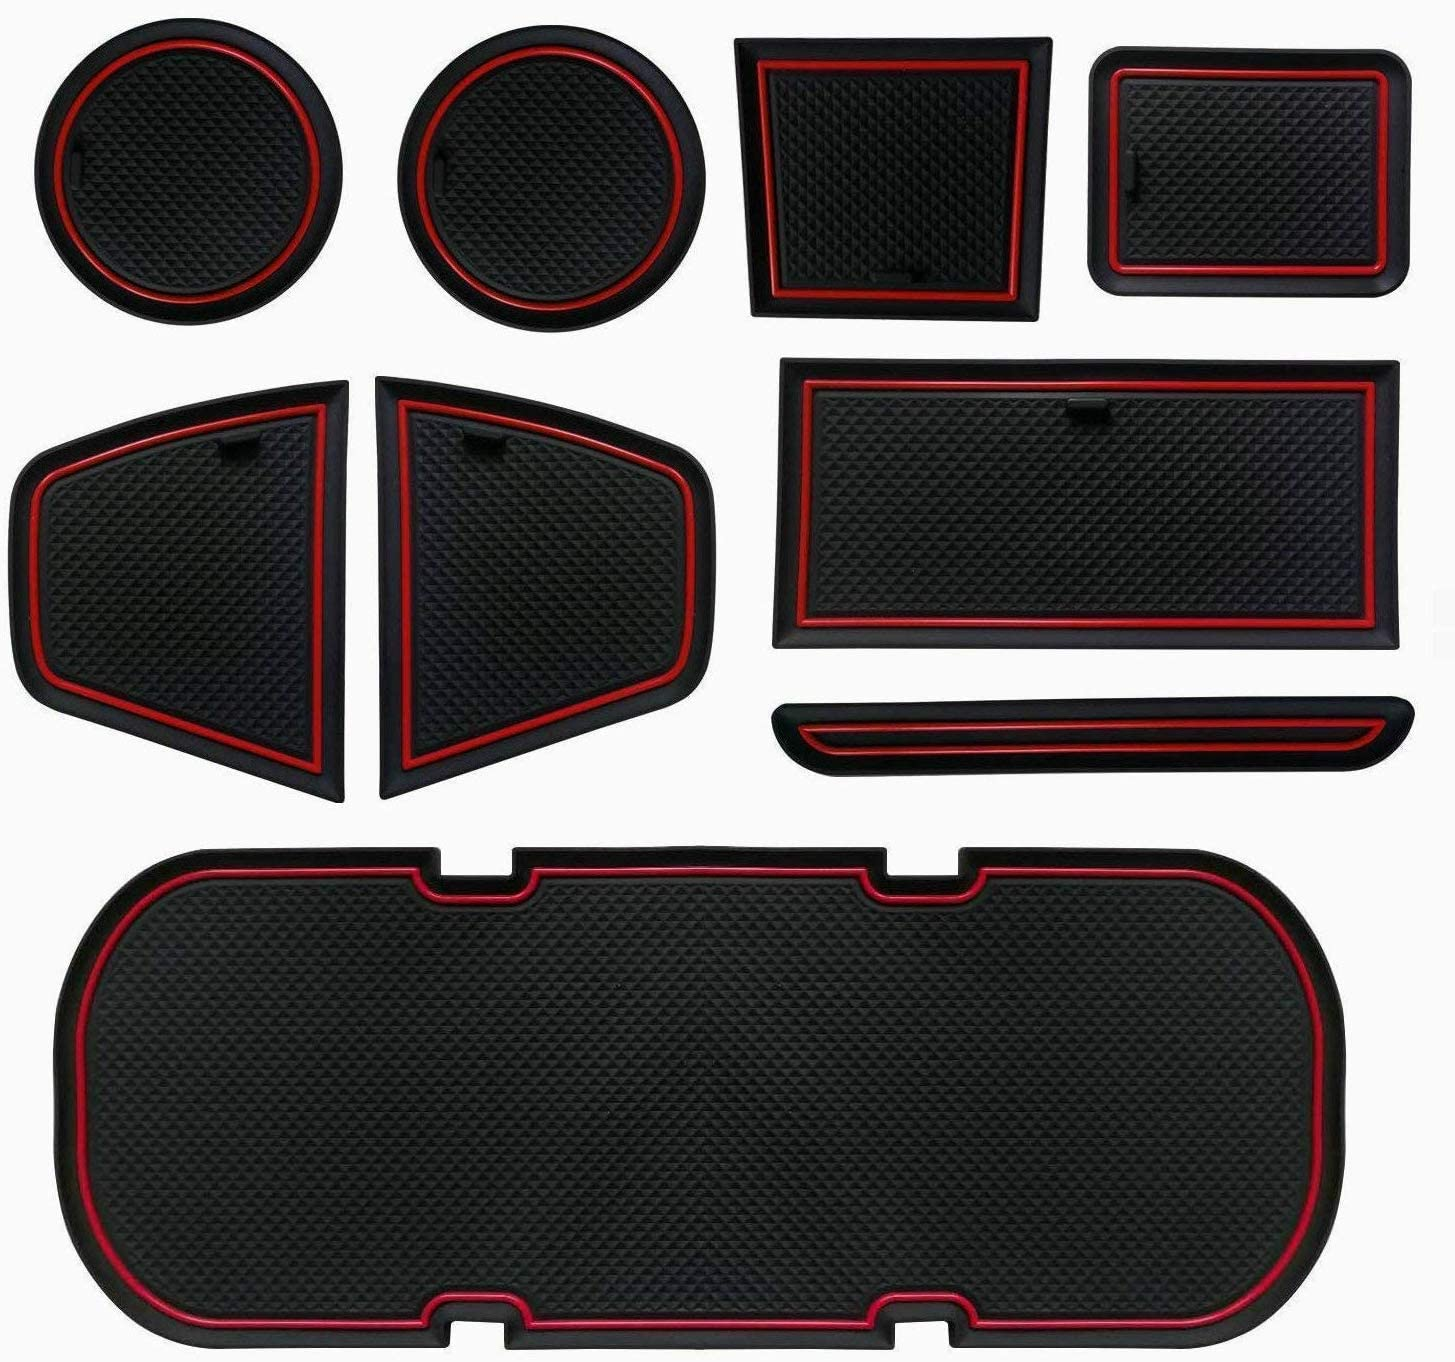 Auovo Anti-dust Door Mats for 2019 2018 2017 2016 2015 2014 2013 Subaru BRZ Toyota 86 Scion FR-S Door Pocket Liners Cup Pads Console Mats Interior Accessories 8 pcs,White